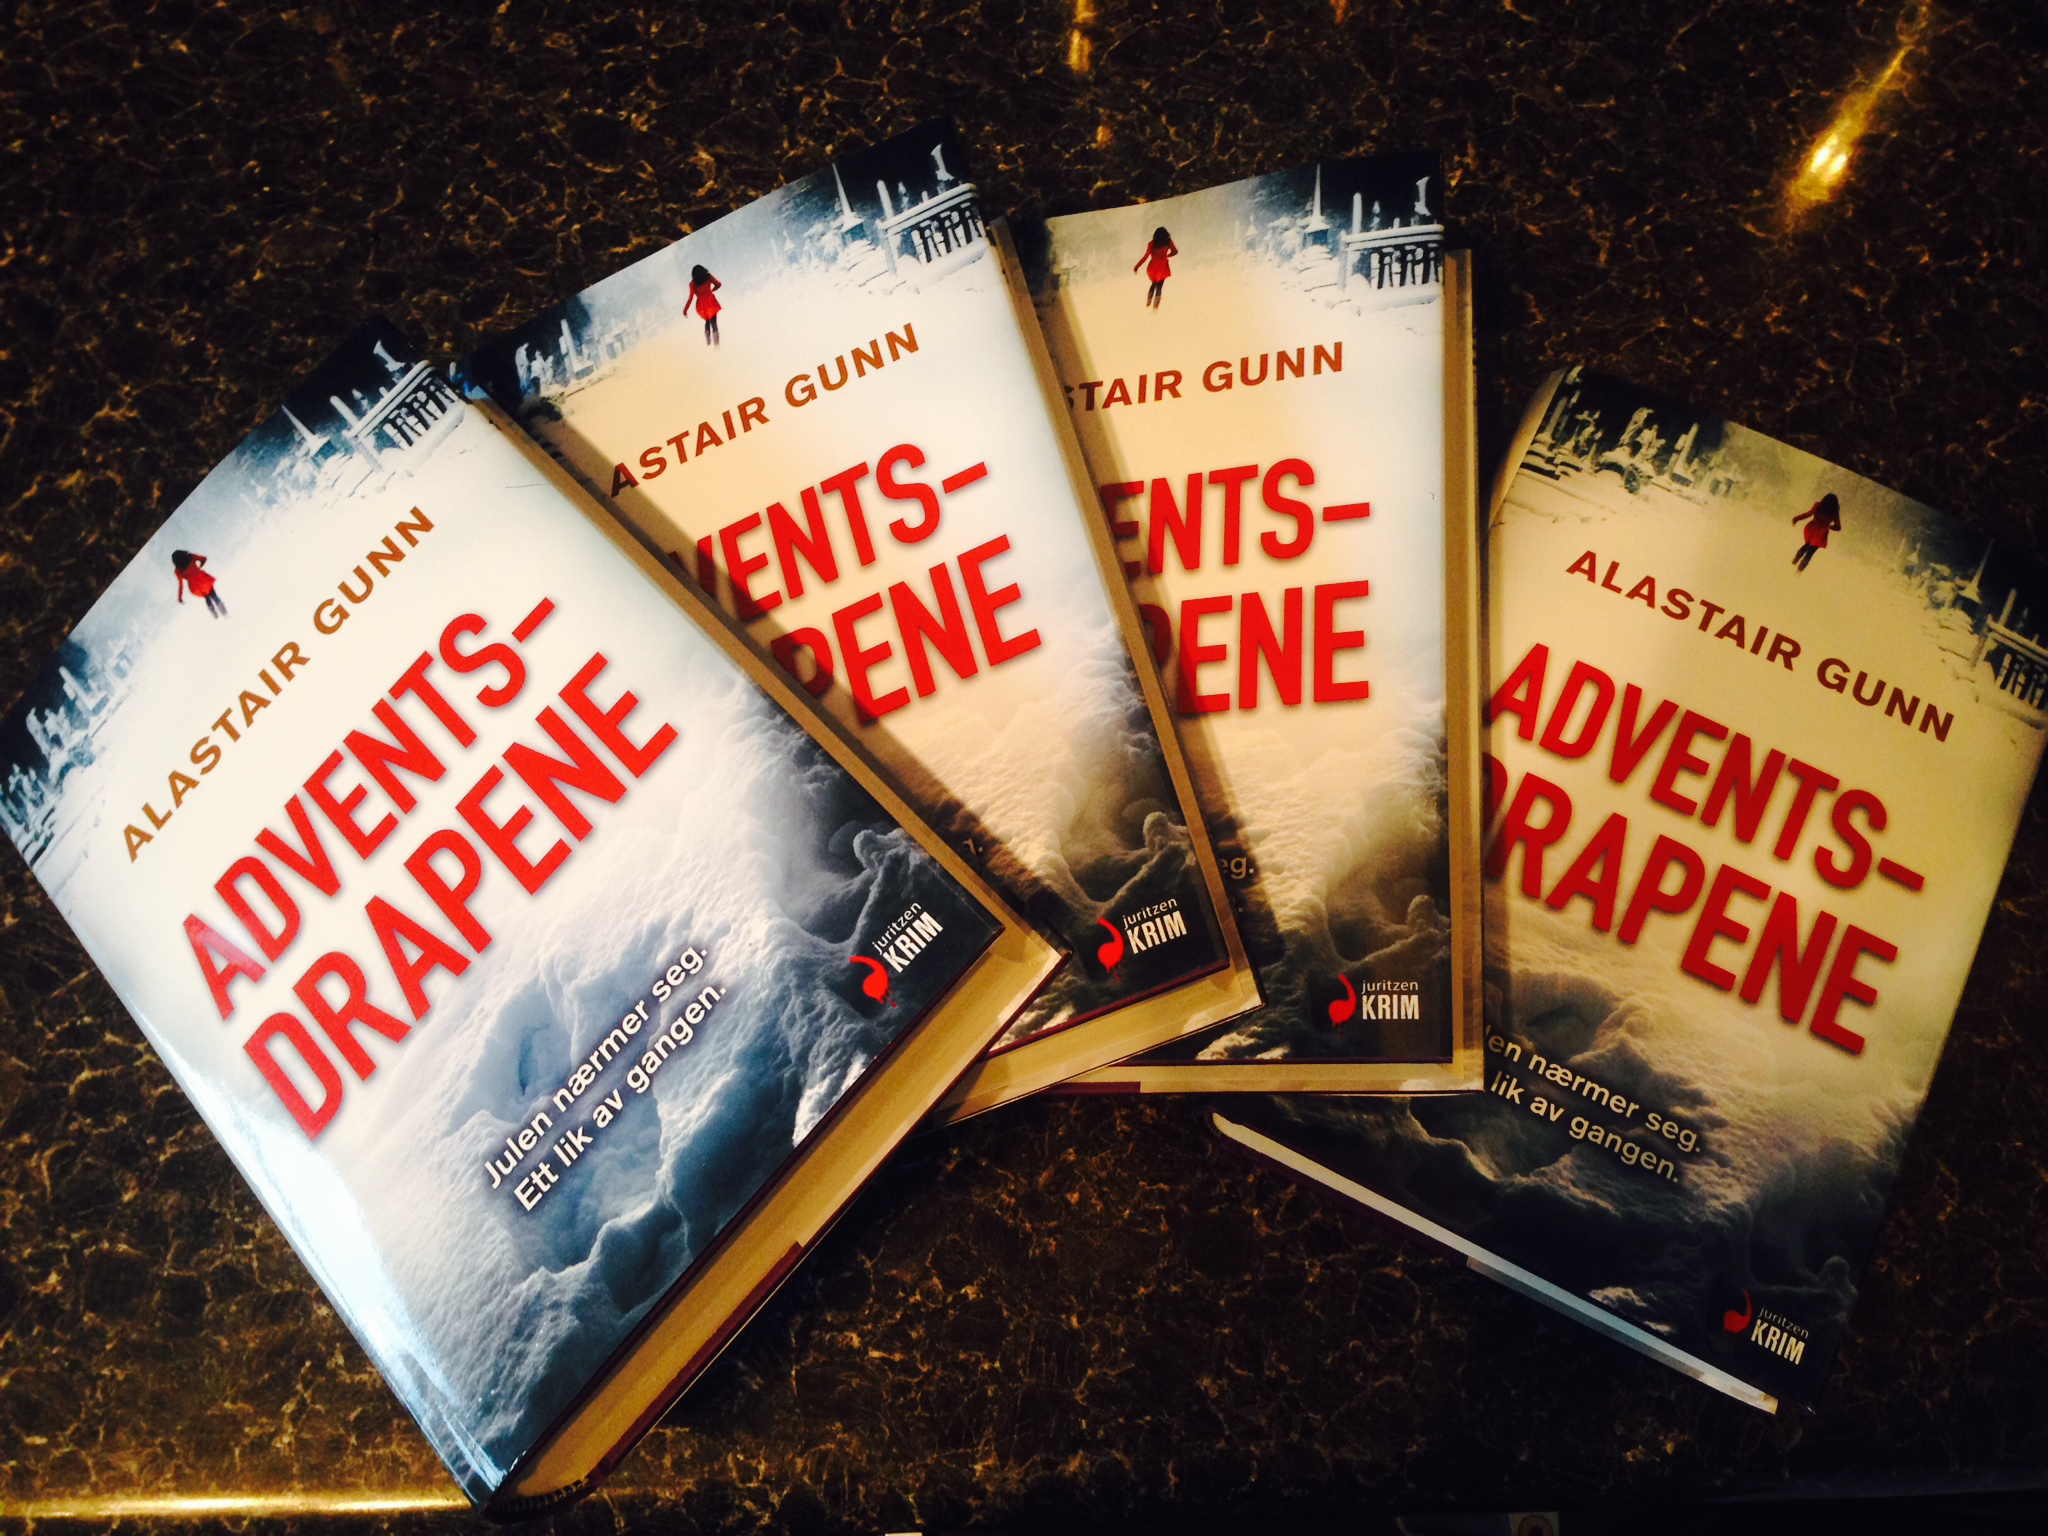 Adventsdrapene hardbacks